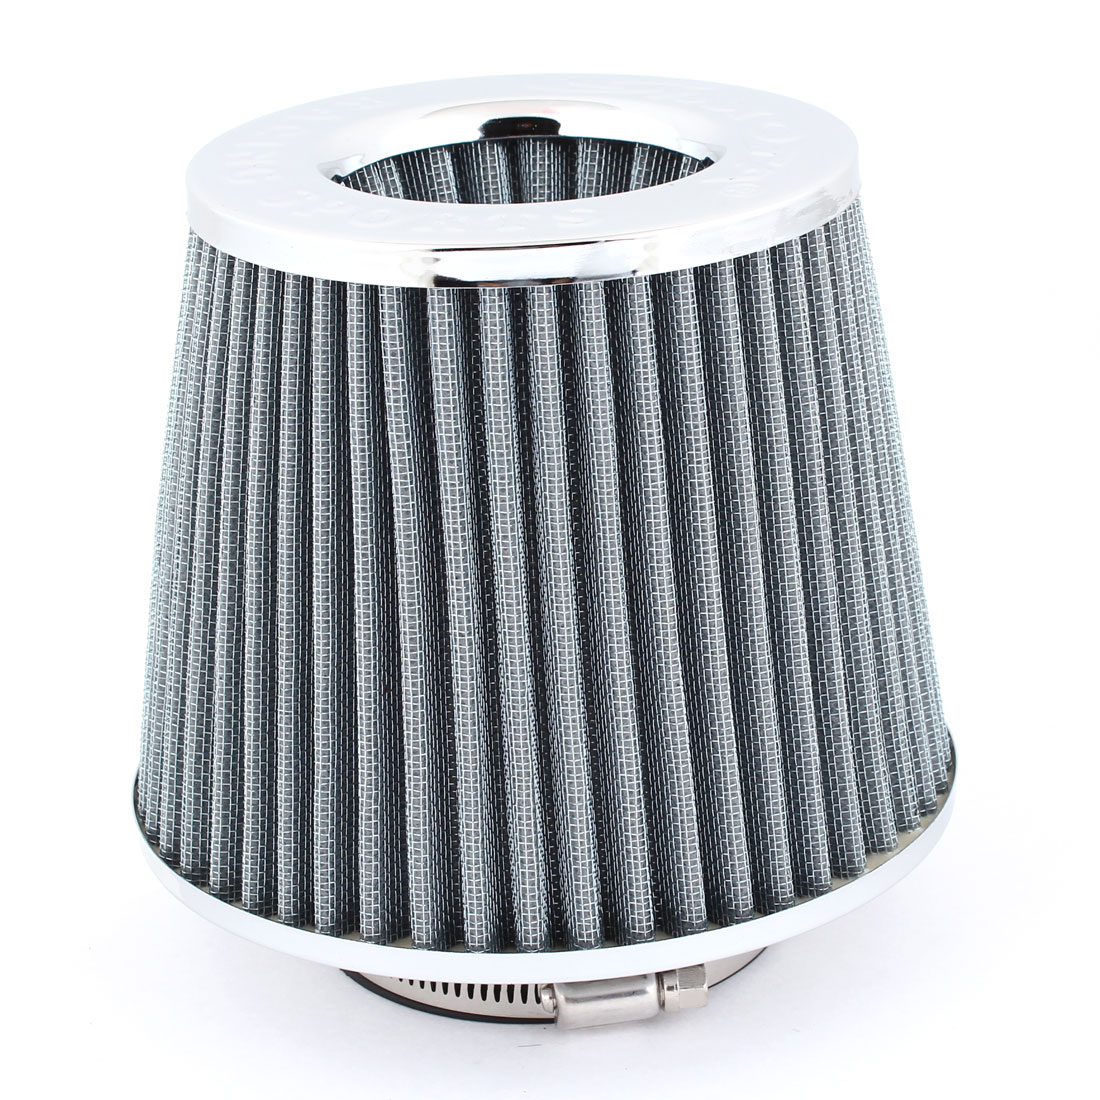 "Truck Car Stainless Steel Mesh Gray Air Flow Filter 76mm 3"" Inner Dia"